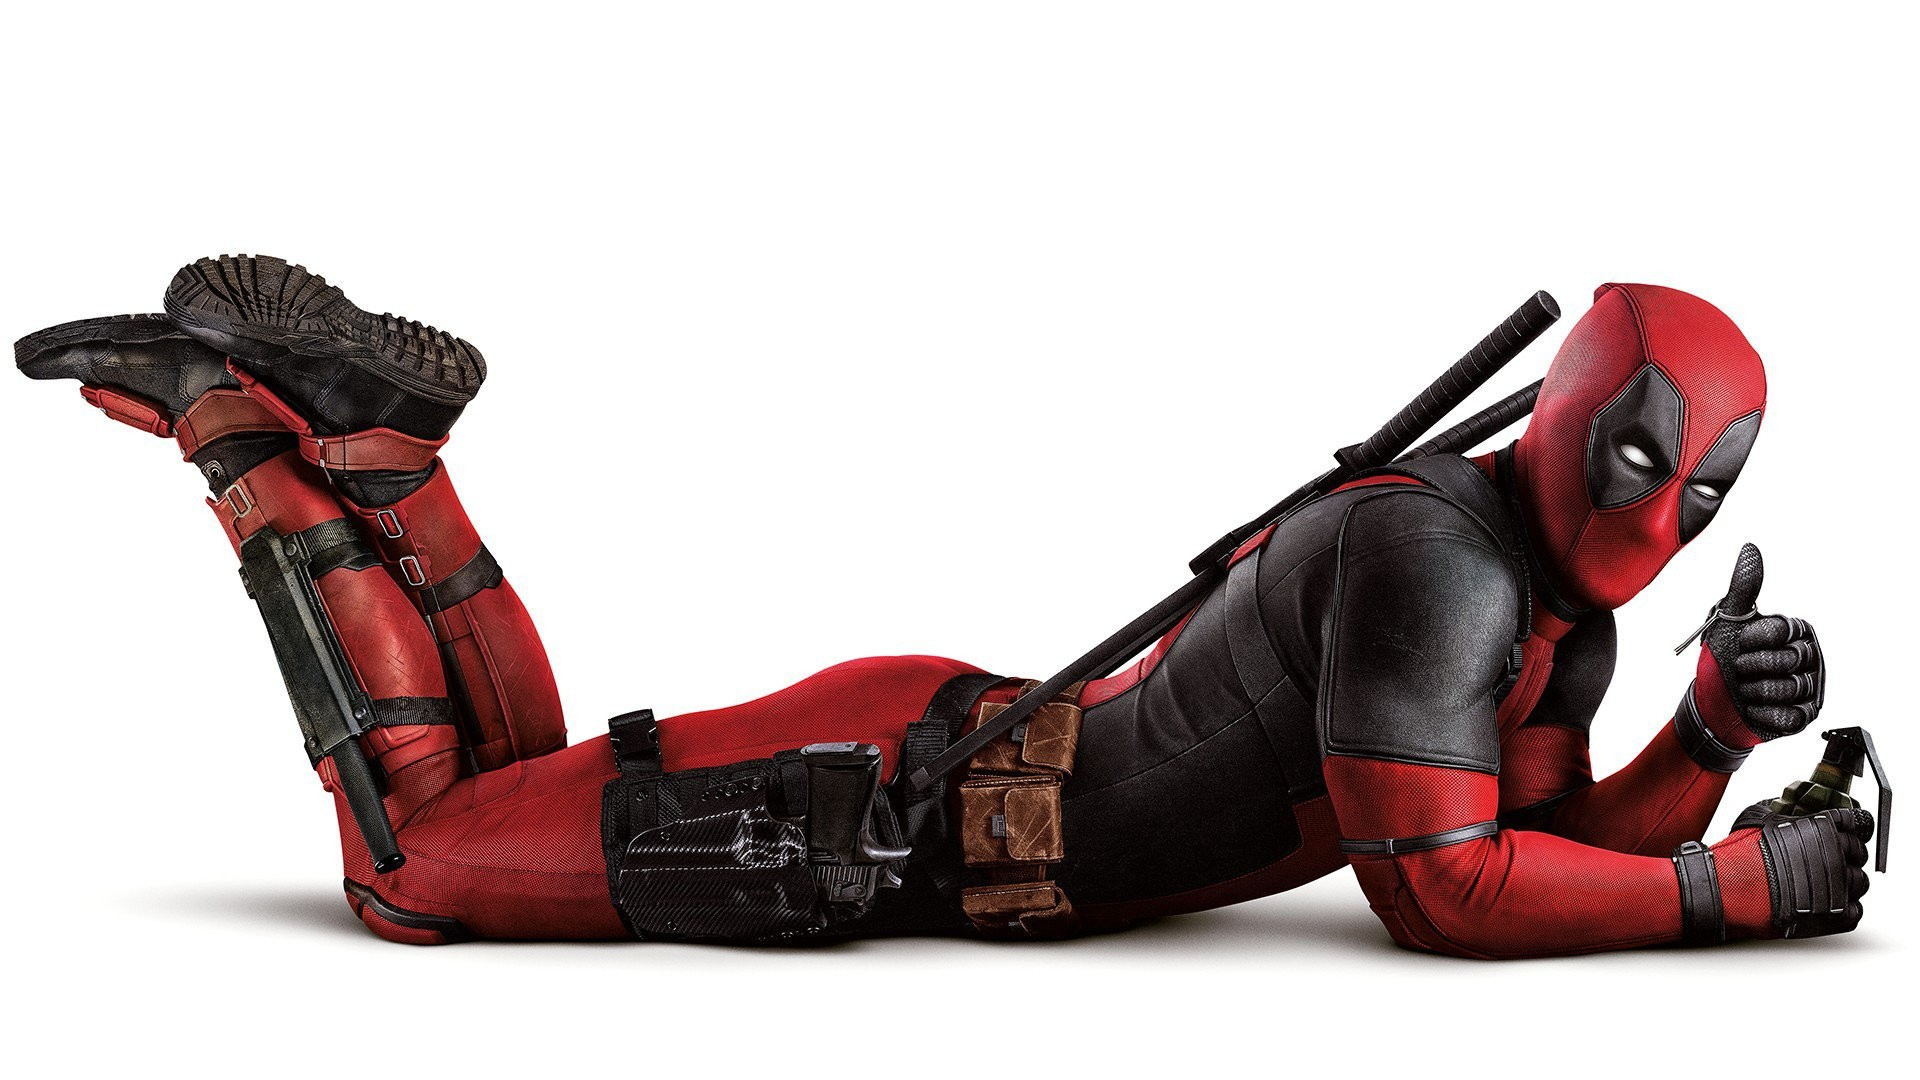 1920x1080 Deadpool Desktop (1600x900 Resolution)